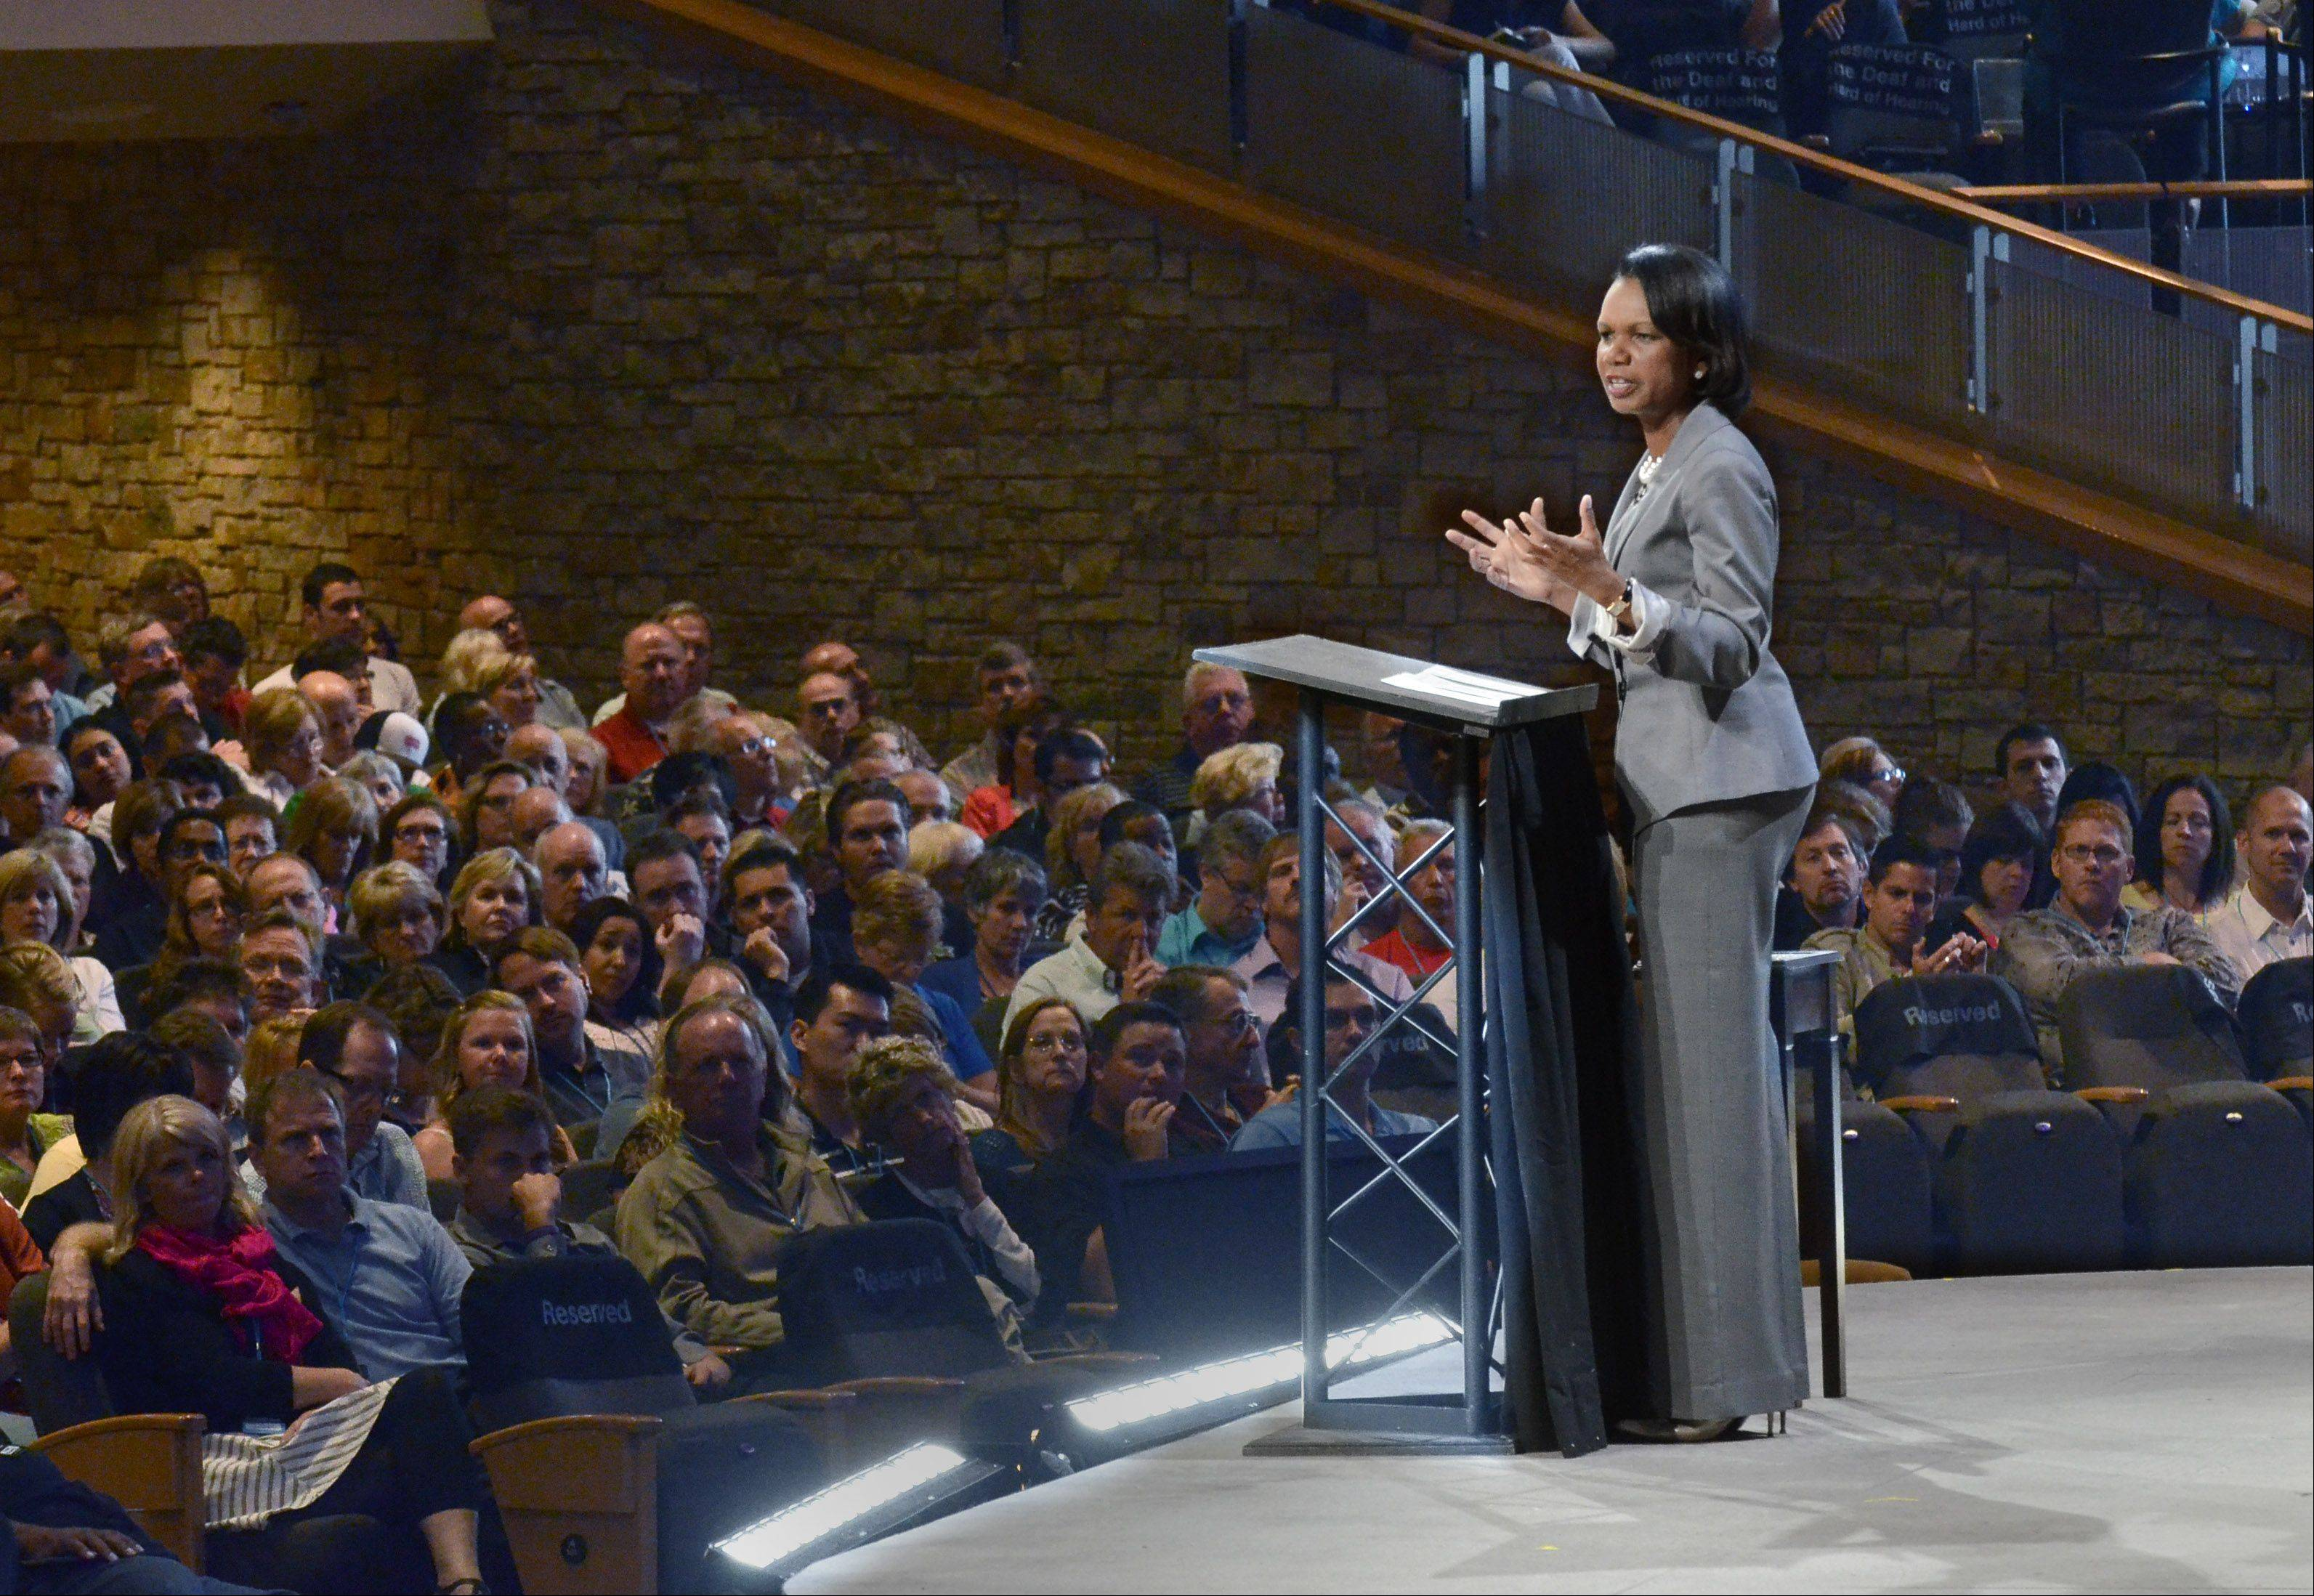 About 7,000 people listen to former U.S. Secretary of State Condoleezza Rice at the Willow Creek Community Church Global Leadership Summit Thursday in South Barrington.